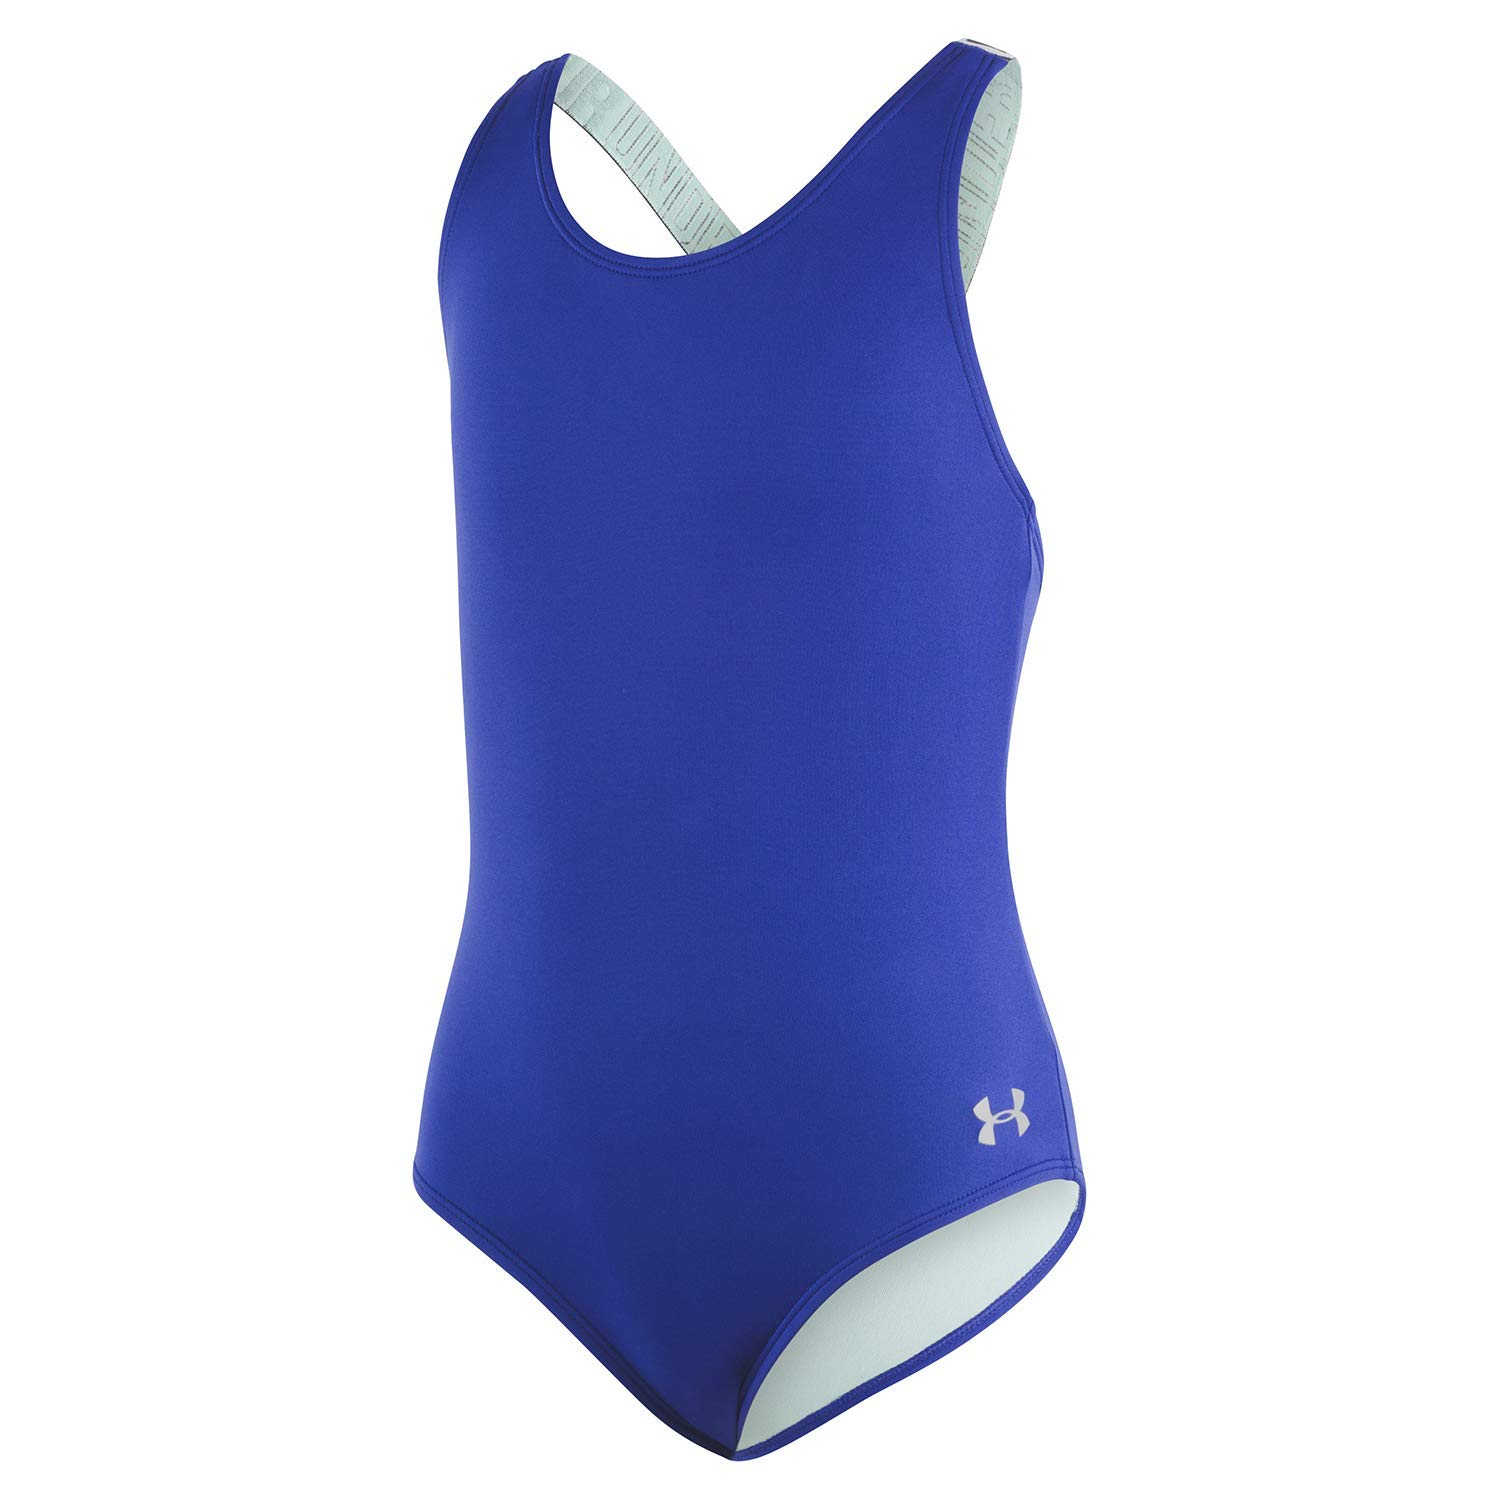 Under Armour Big Girls' Racer One Piece Swimsuit, Formation Blue-S19, 8